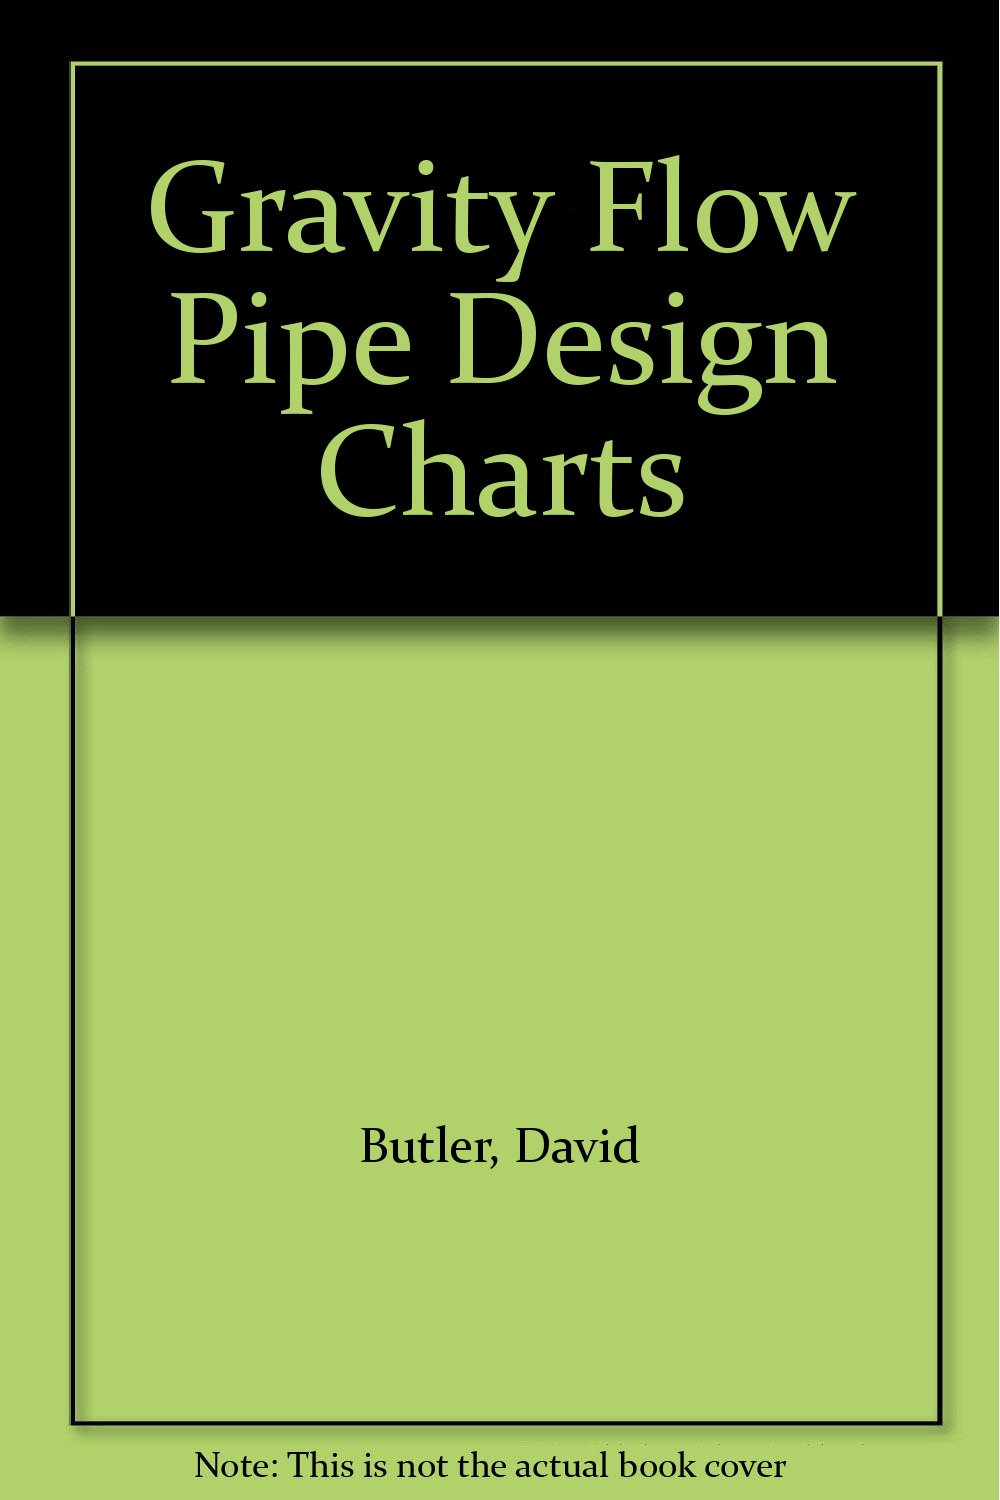 Buy gravity flow pipe design charts book online at low prices in buy gravity flow pipe design charts book online at low prices in india gravity flow pipe design charts reviews ratings amazon nvjuhfo Image collections